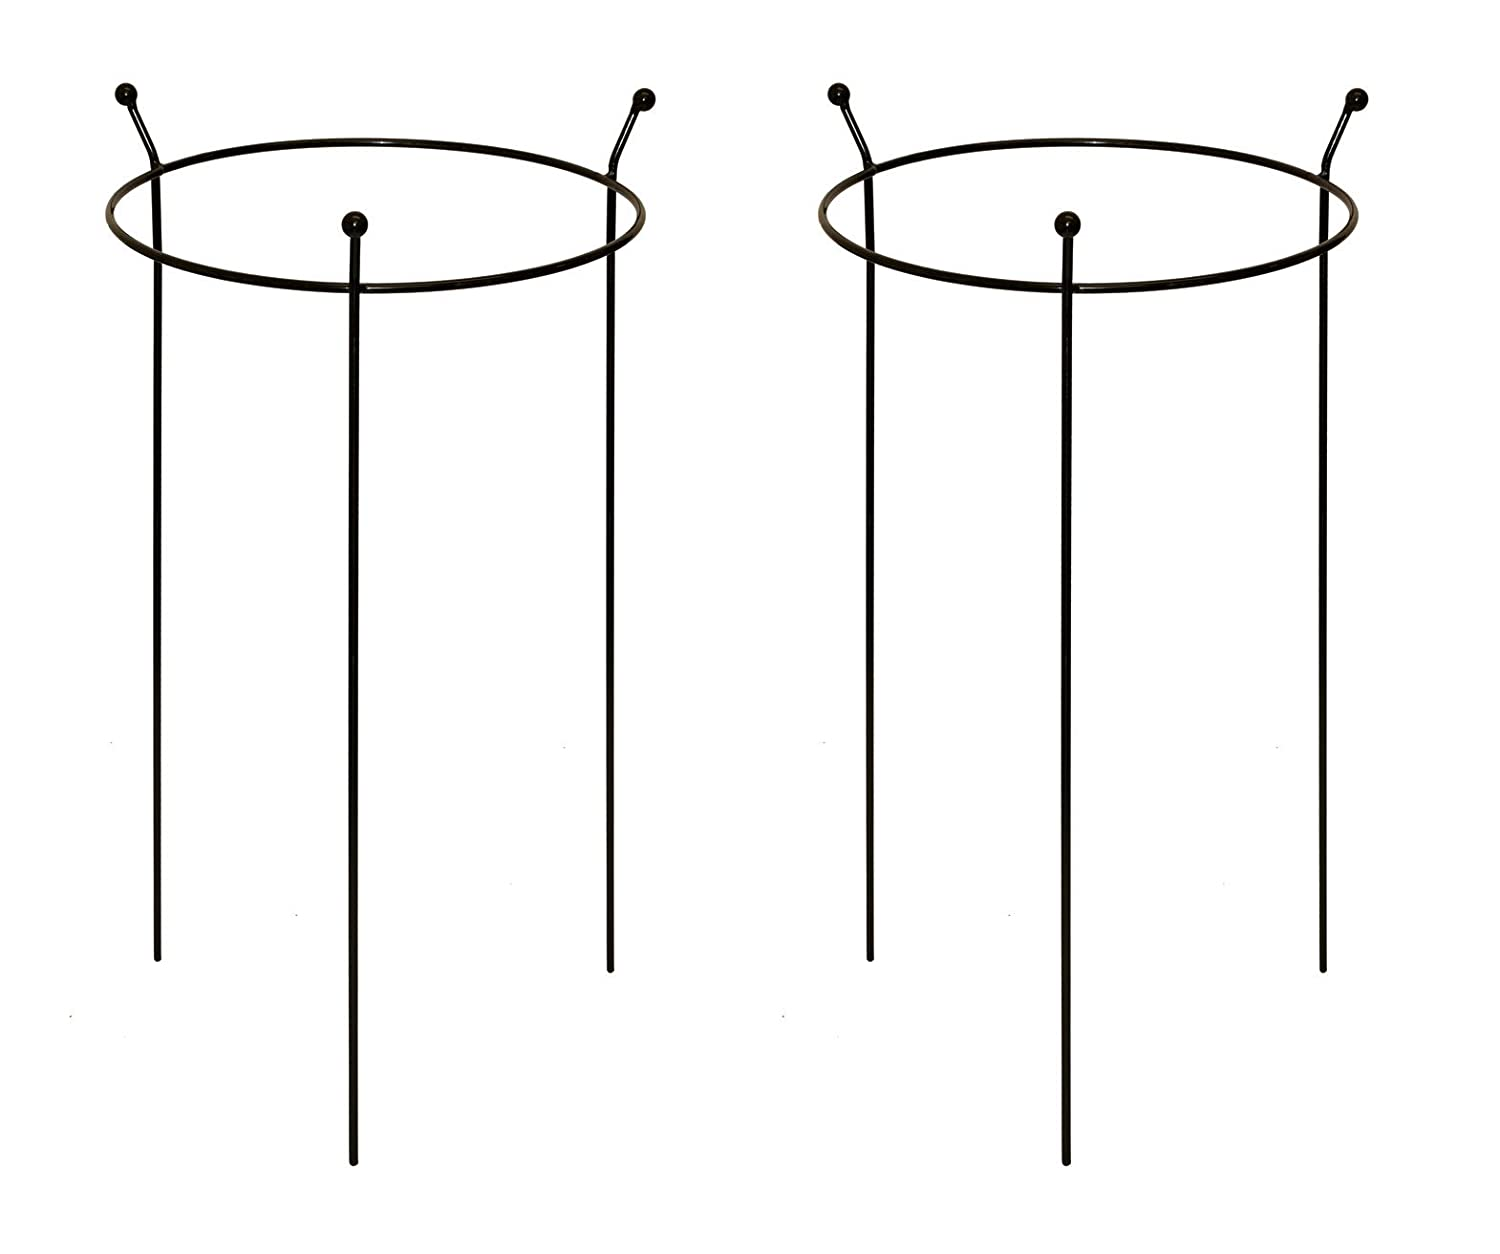 Pack of 2 x Heavy Duty Large Black Metal Plant Supports Rings (45cm diameter x 70cm high) by Ruddings Wood - Garden Outdoor Flower Border Grow Through Cage